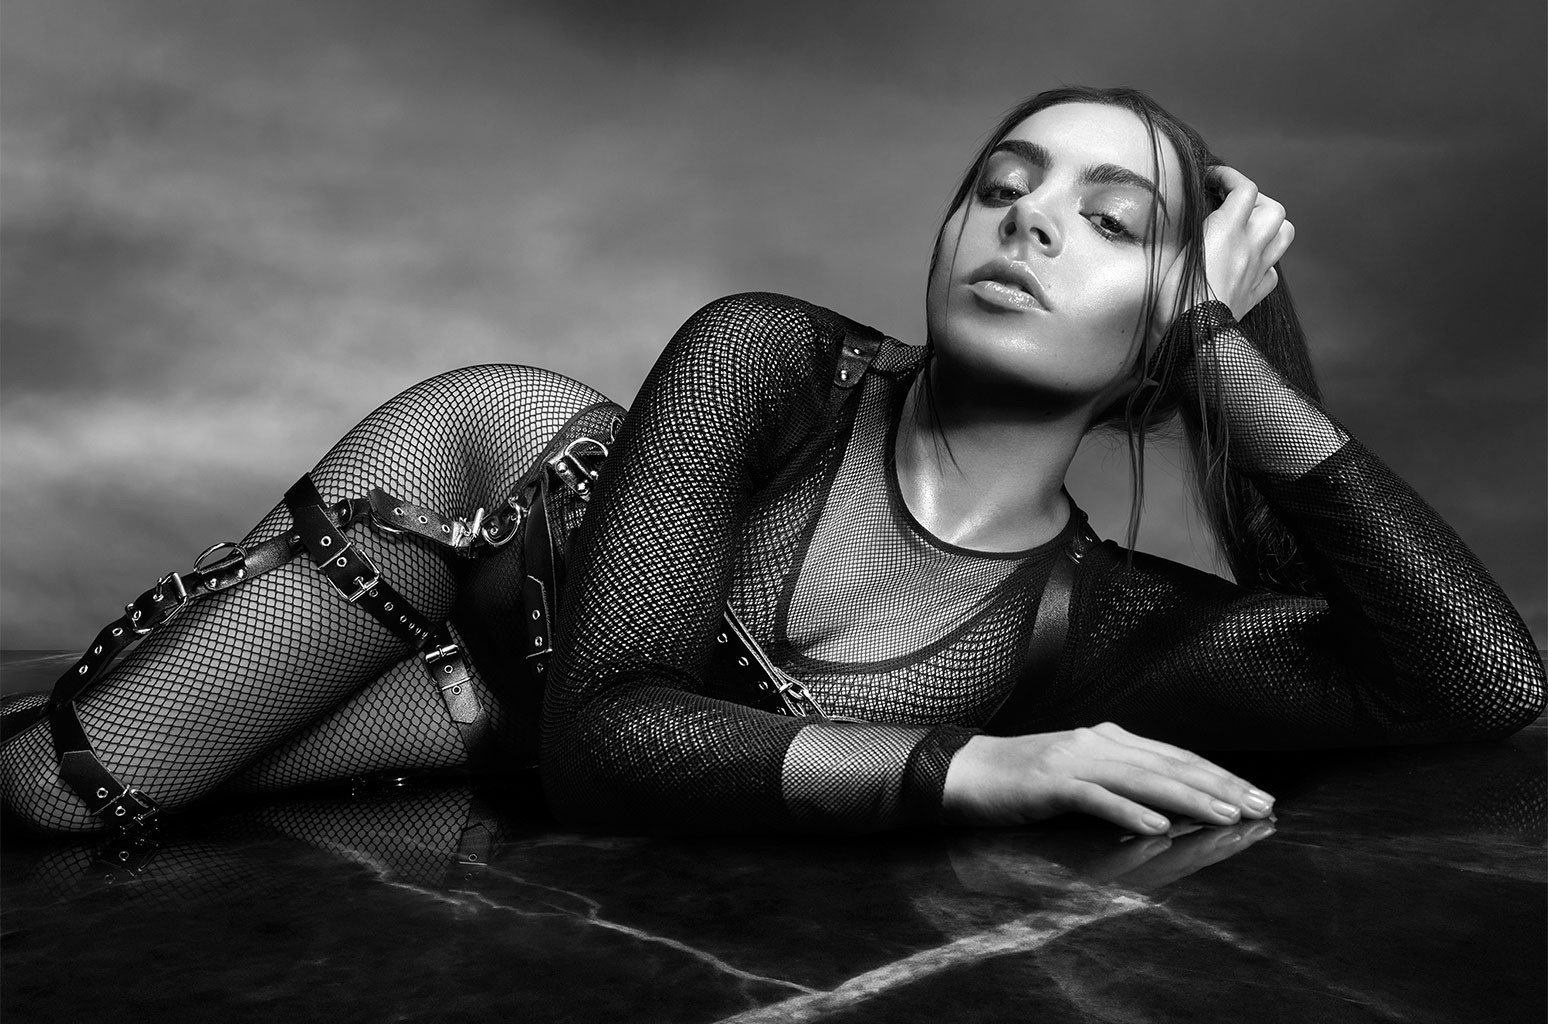 Charli XCX photographed in 2016.